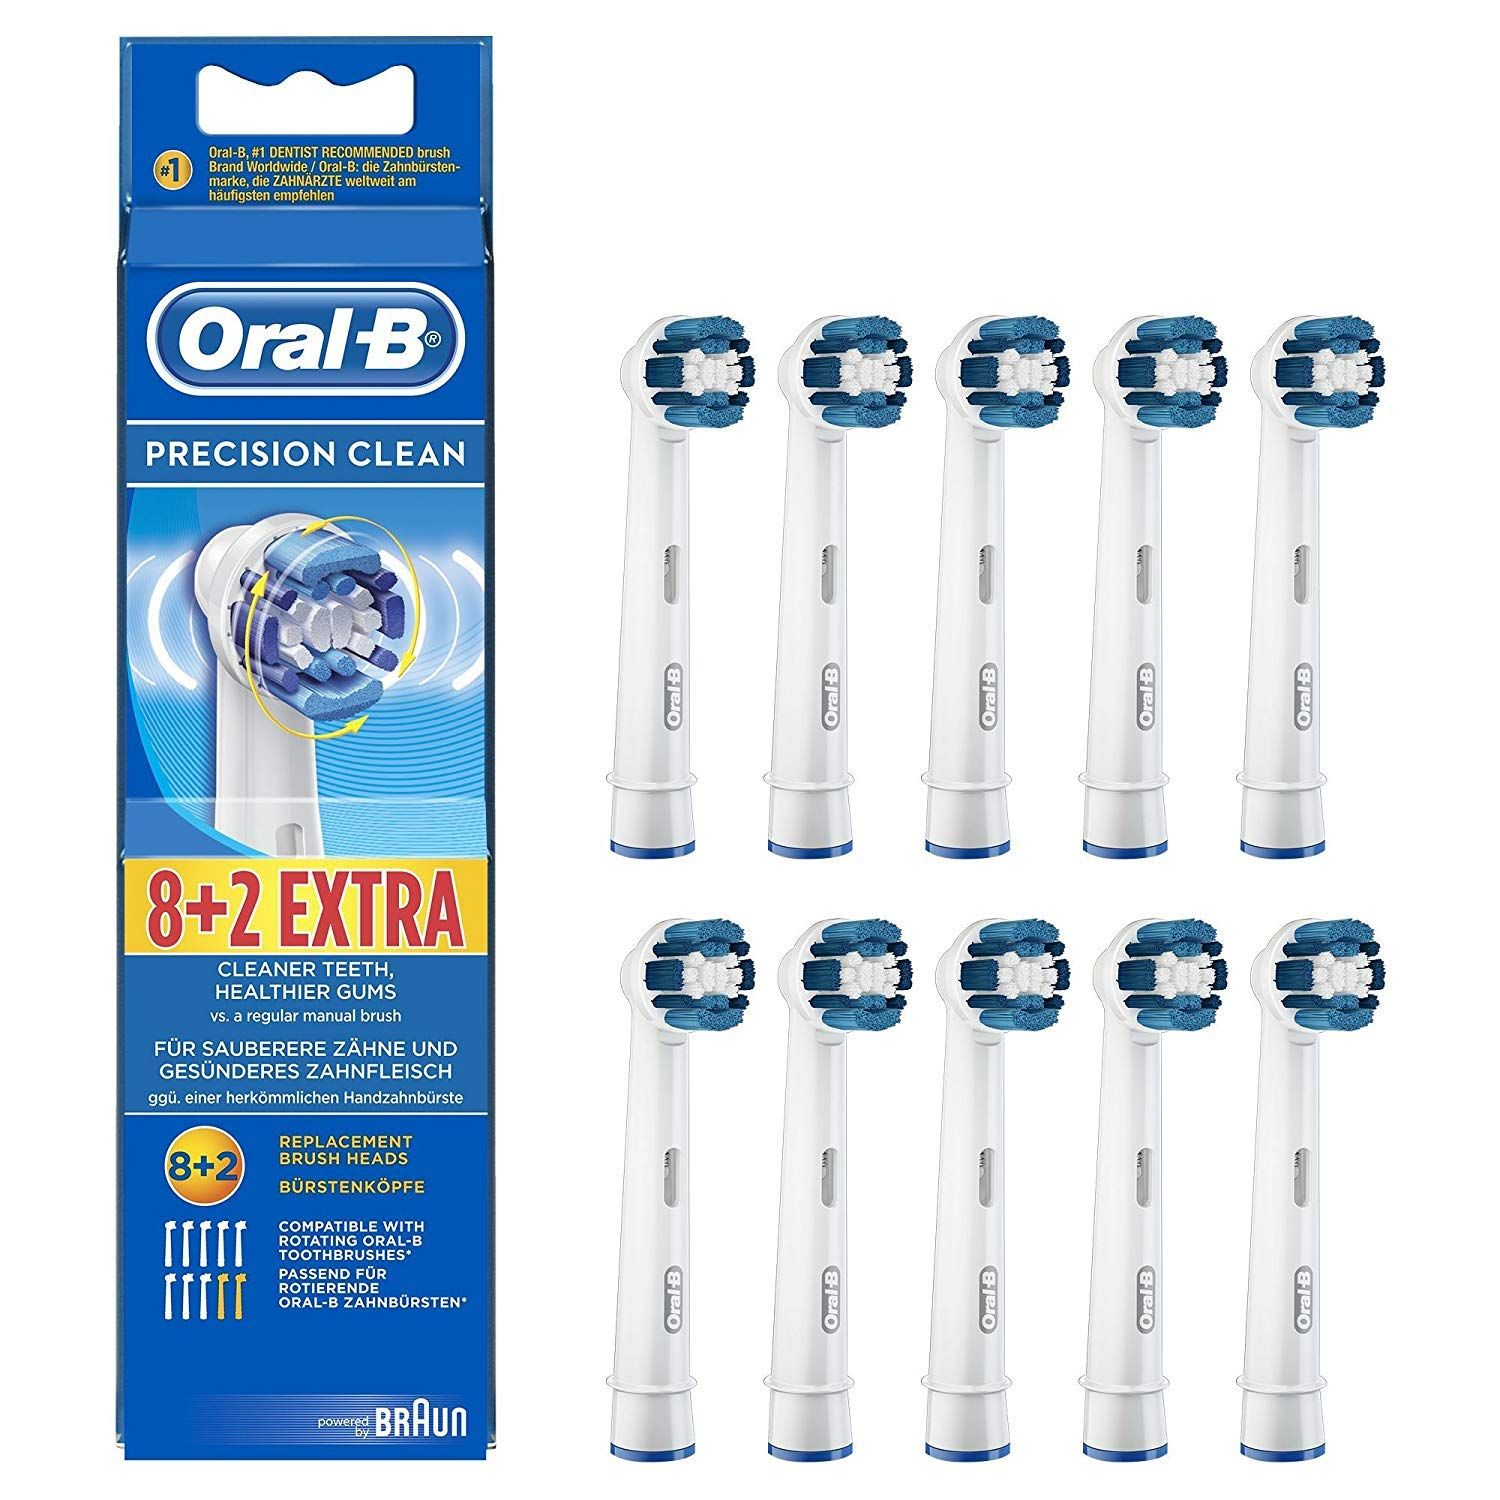 Genuine Original Oral B Braun Precision Clean Replacement Rechargeable Toothbrush Heads 10 Count International In 2020 Brushing Teeth Oral B Toothbrush Replacement